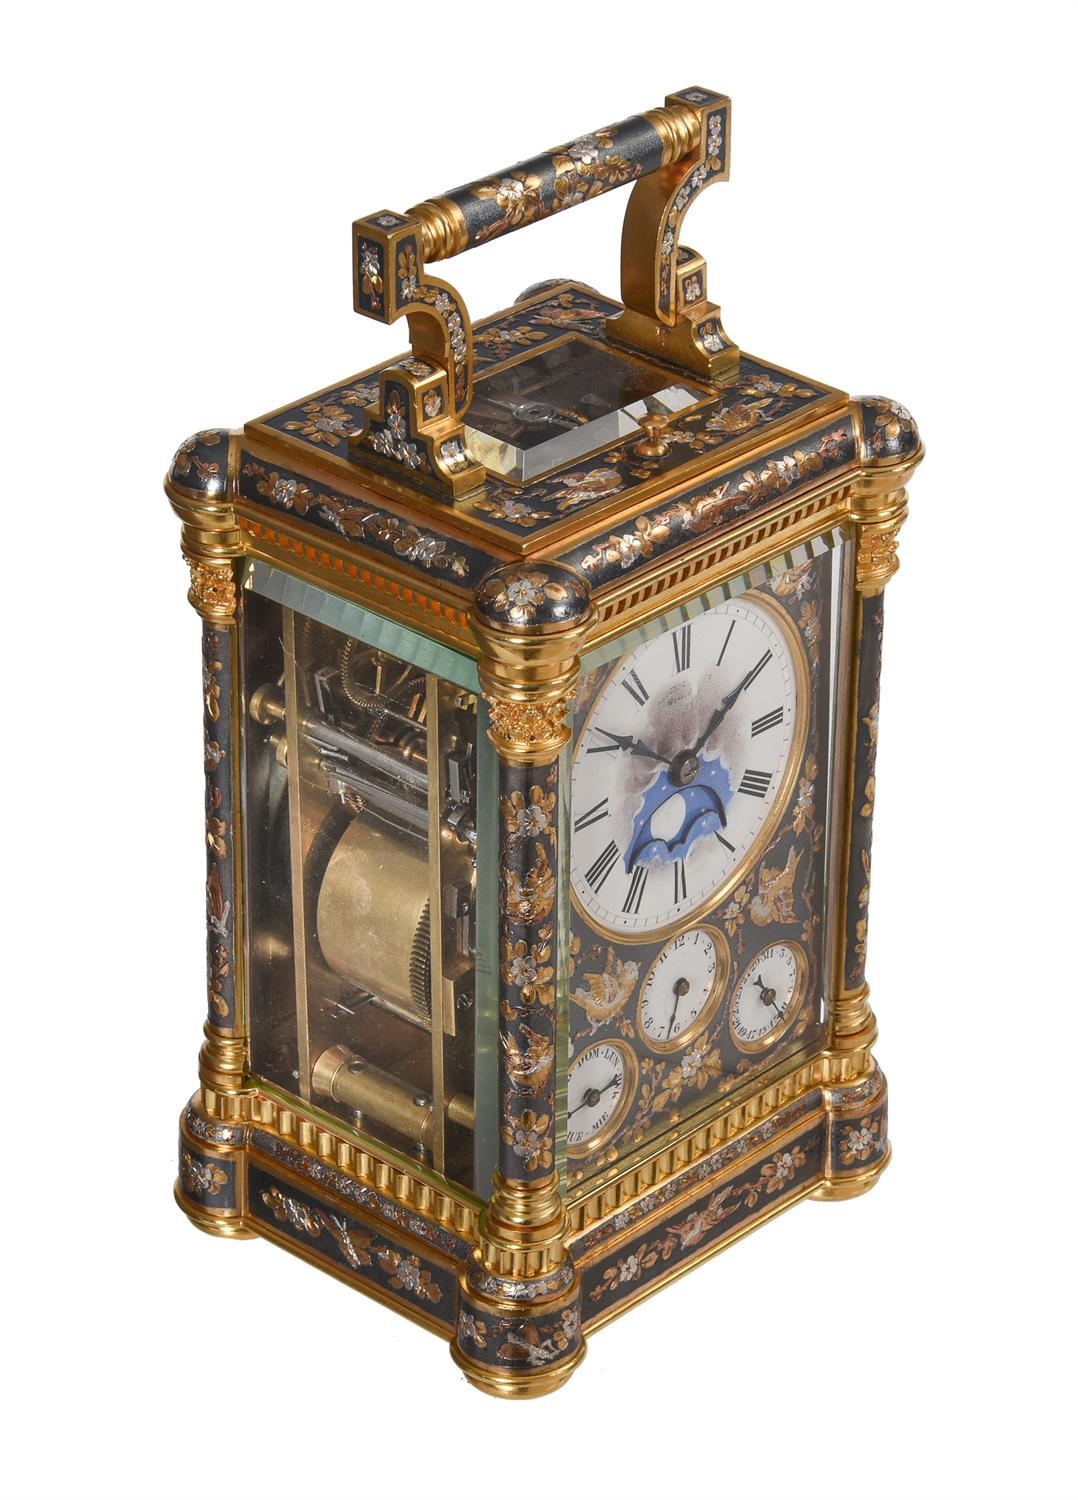 A fine multi-colour grande-sonnerie striking and repeating moonphase calendar alarm carriage clock - Image 6 of 8